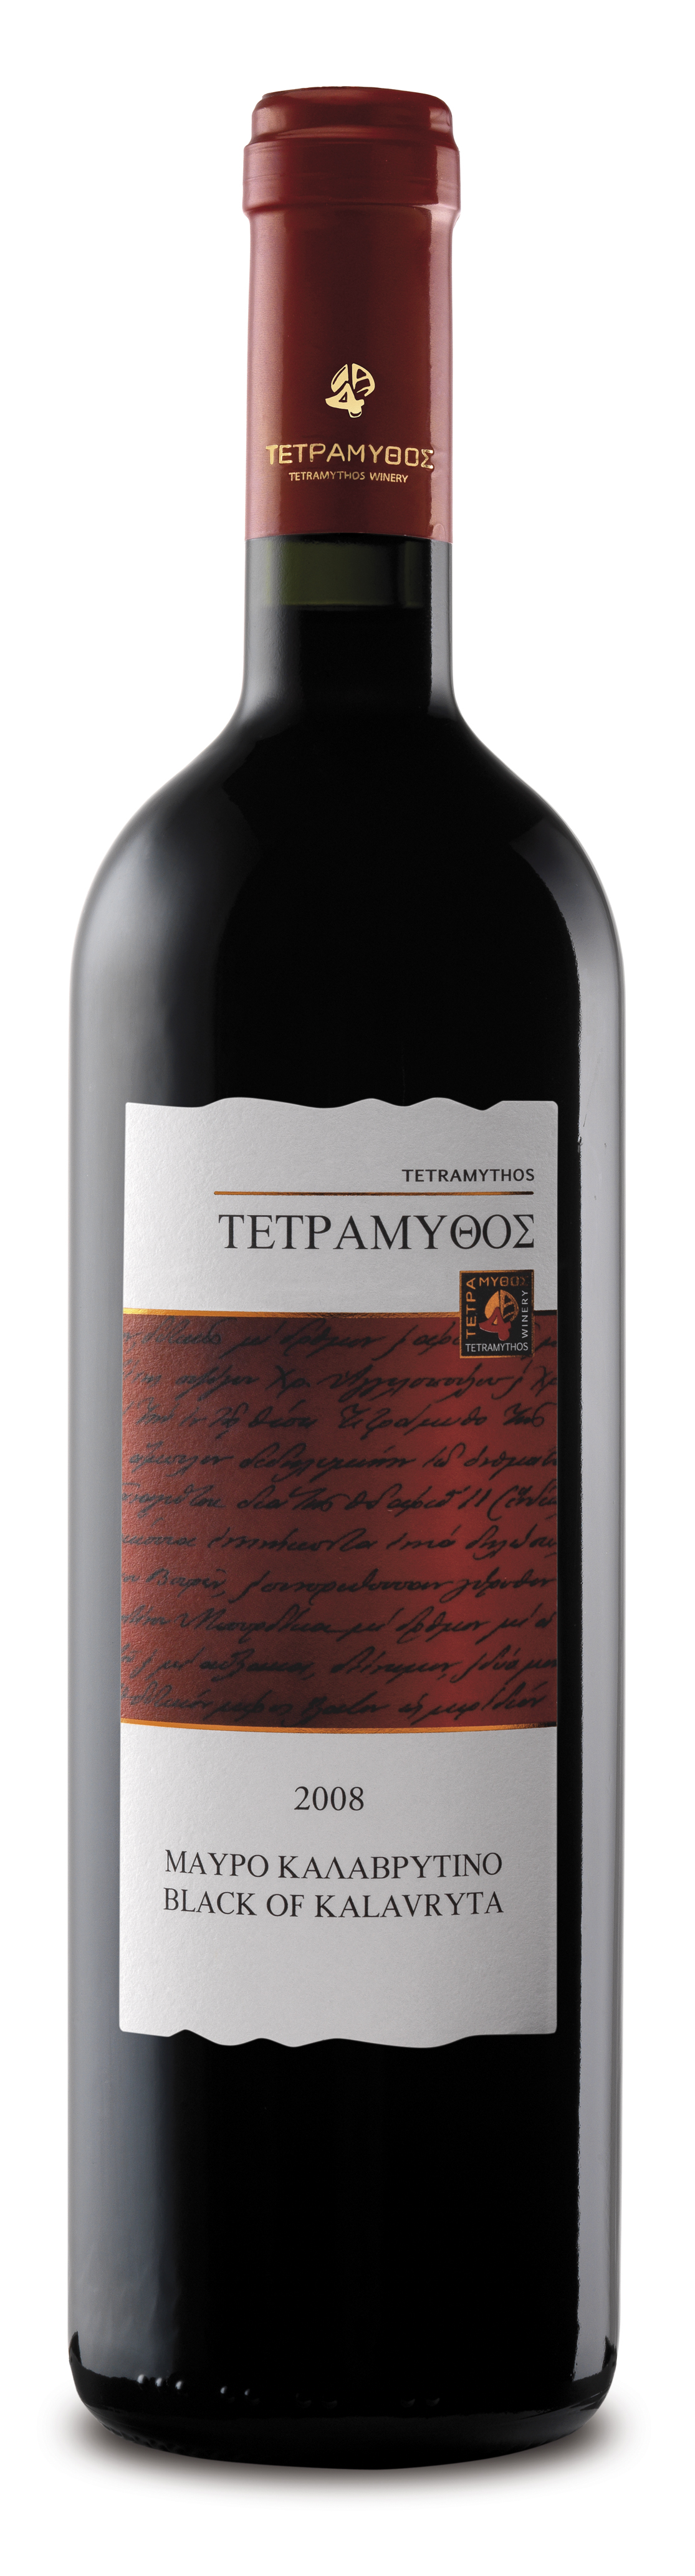 Tetramythos Wines Black Of Kalavryta 2011 Origin Type Protected Geographical Indication Achaia Dry Red Wine Grape Greek Wine Dry Red Wine Natural Wine